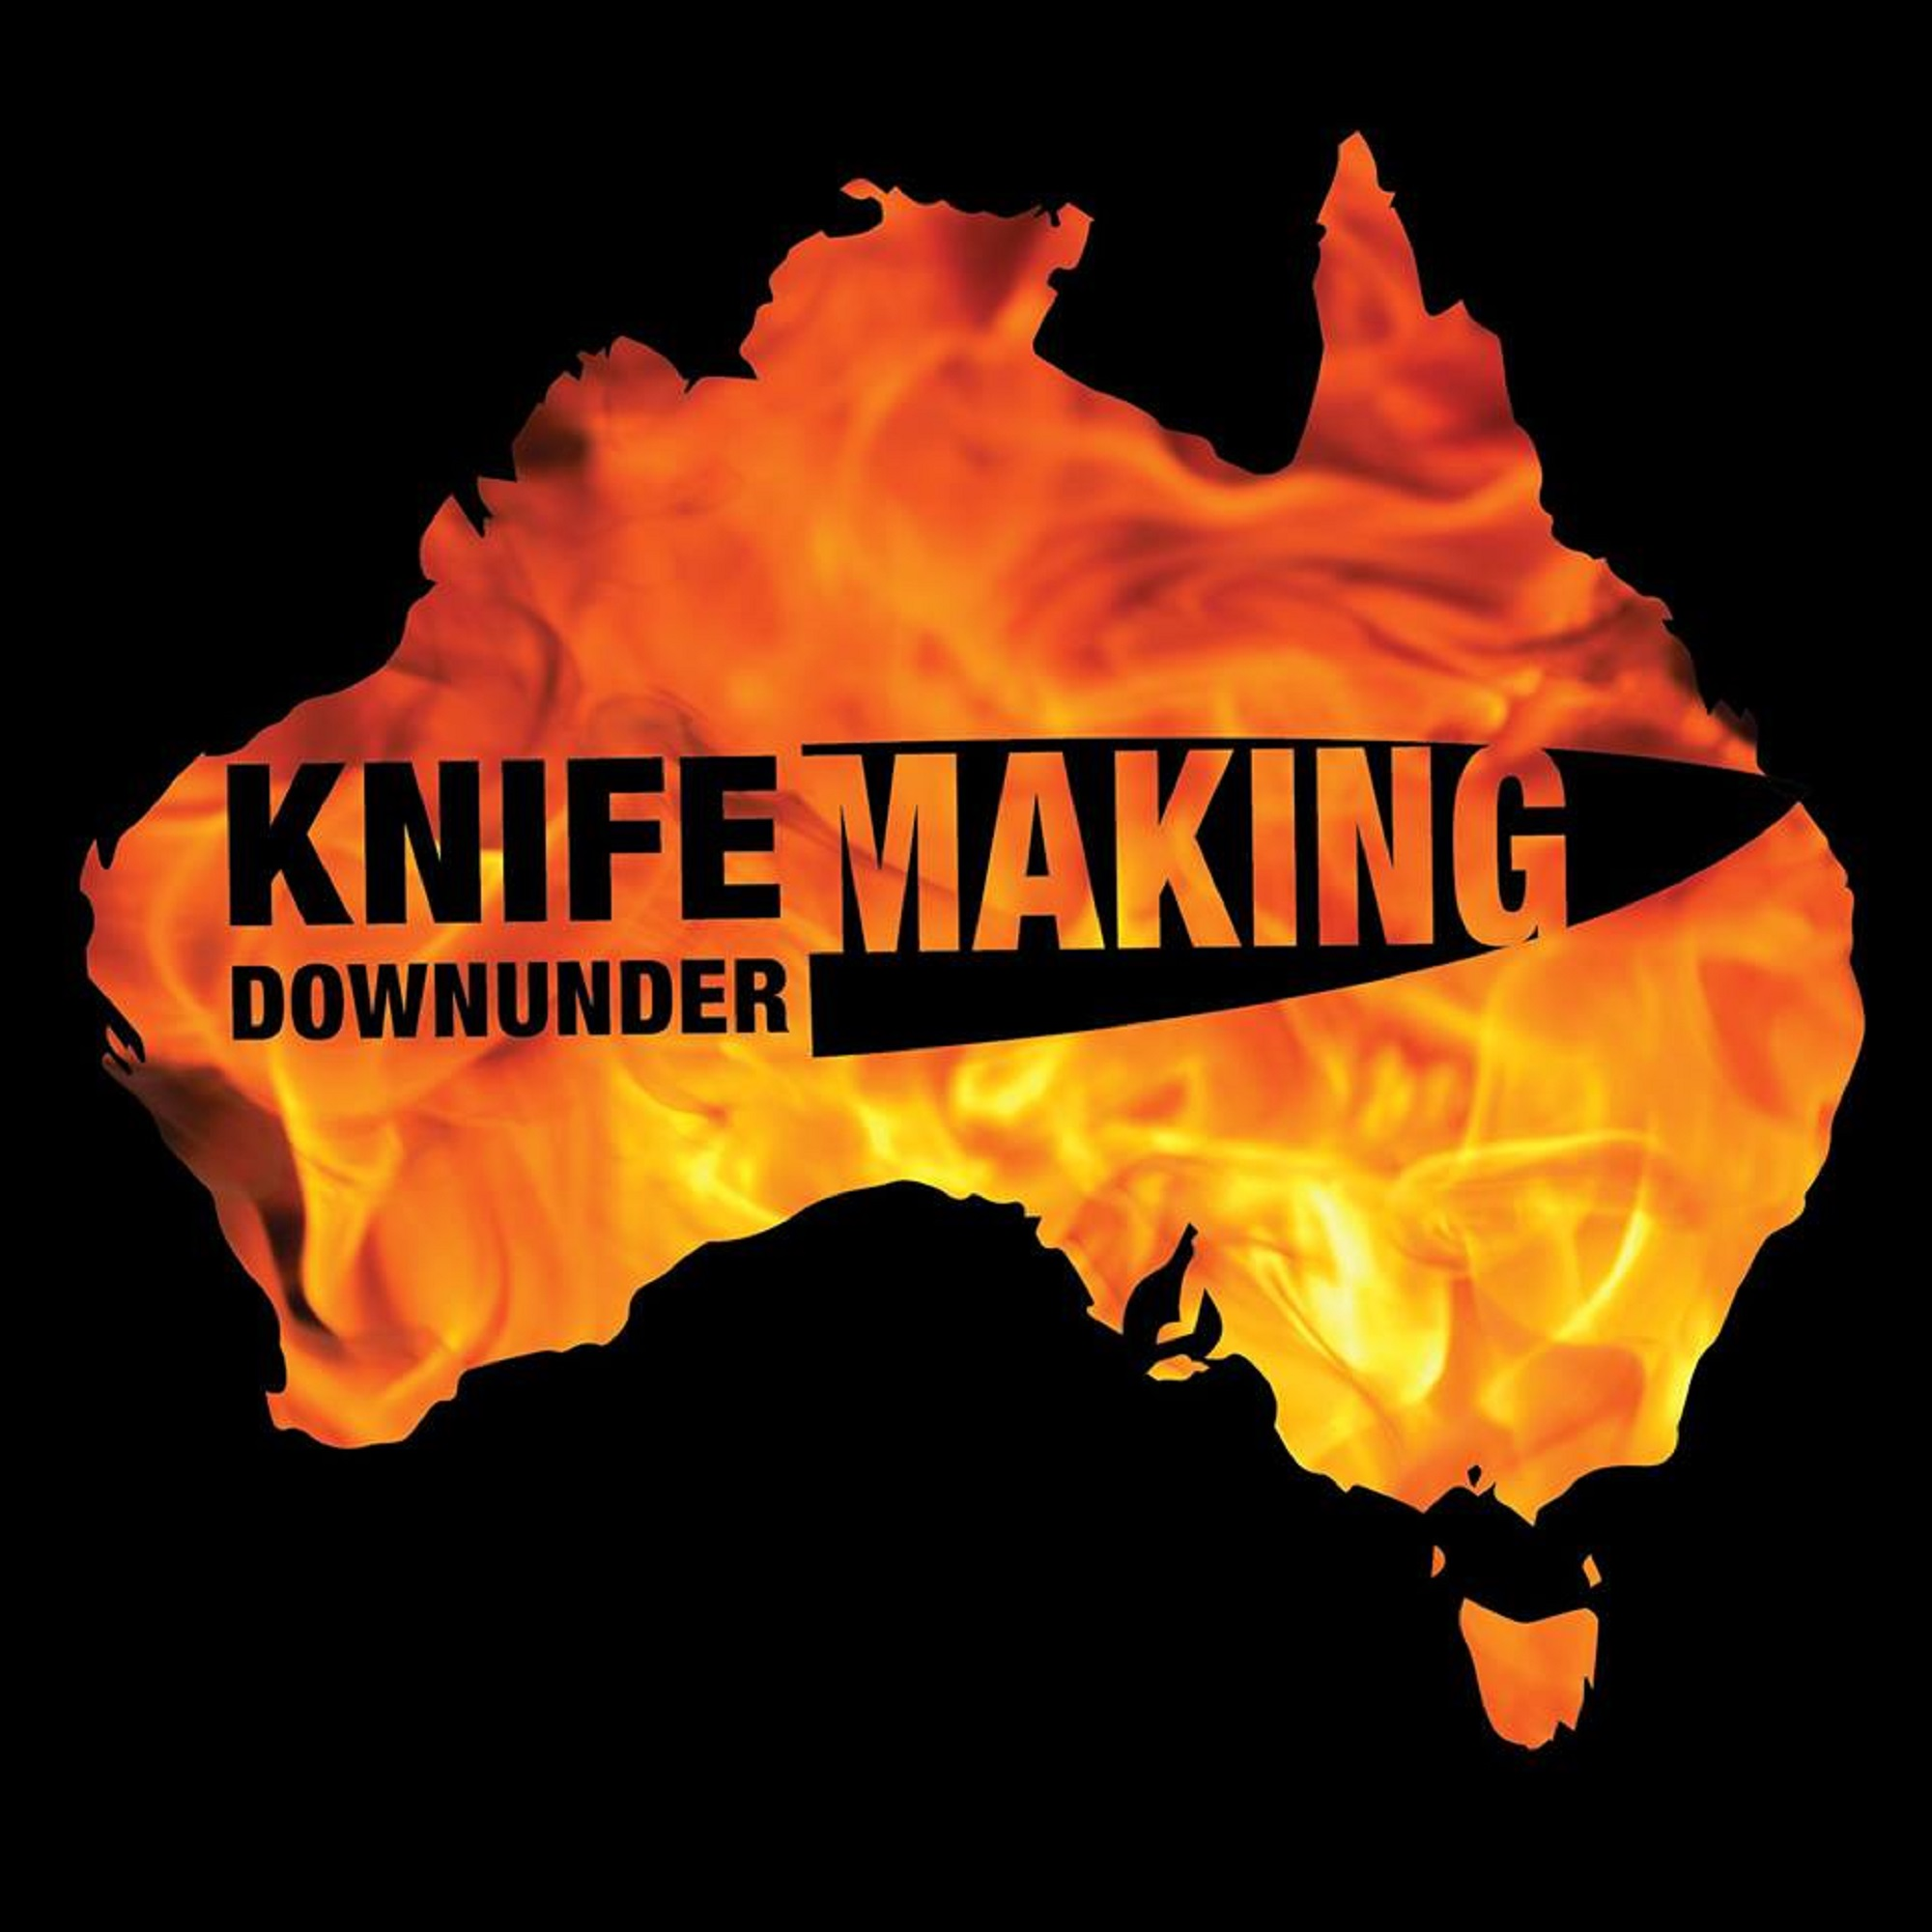 Bob Kramer on Knifemaking Downunder? We do our best to be serious and professional.